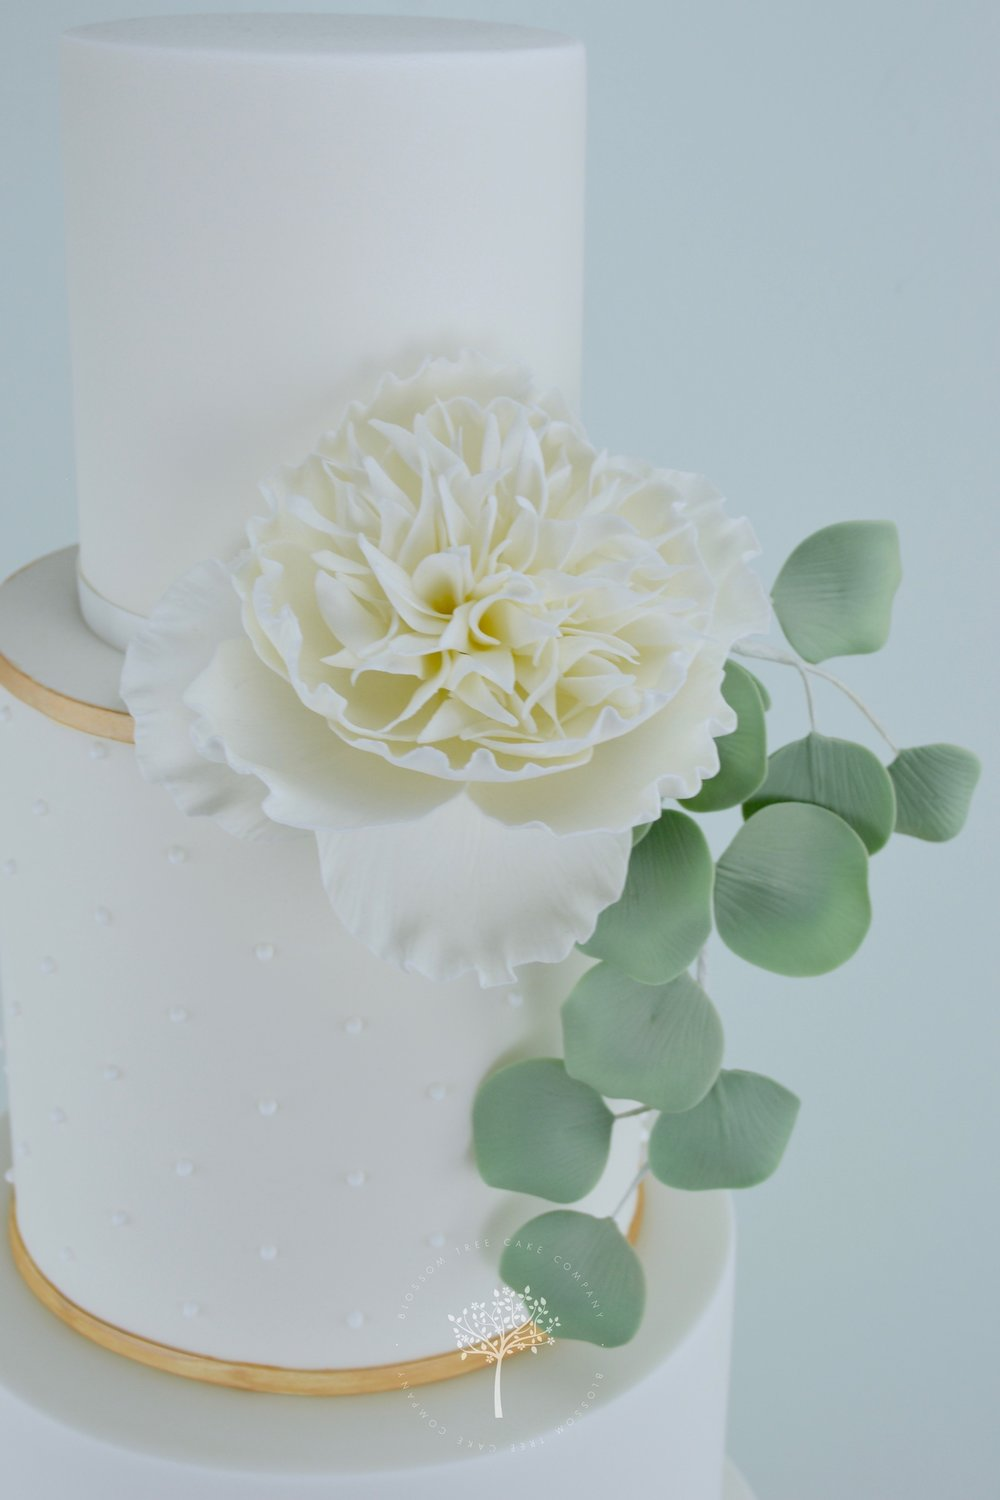 Peony and Eucalyptus wedding cake by Blossom Tree Cake Company Harrogate North Yorkshire - top sugar peony.jpg